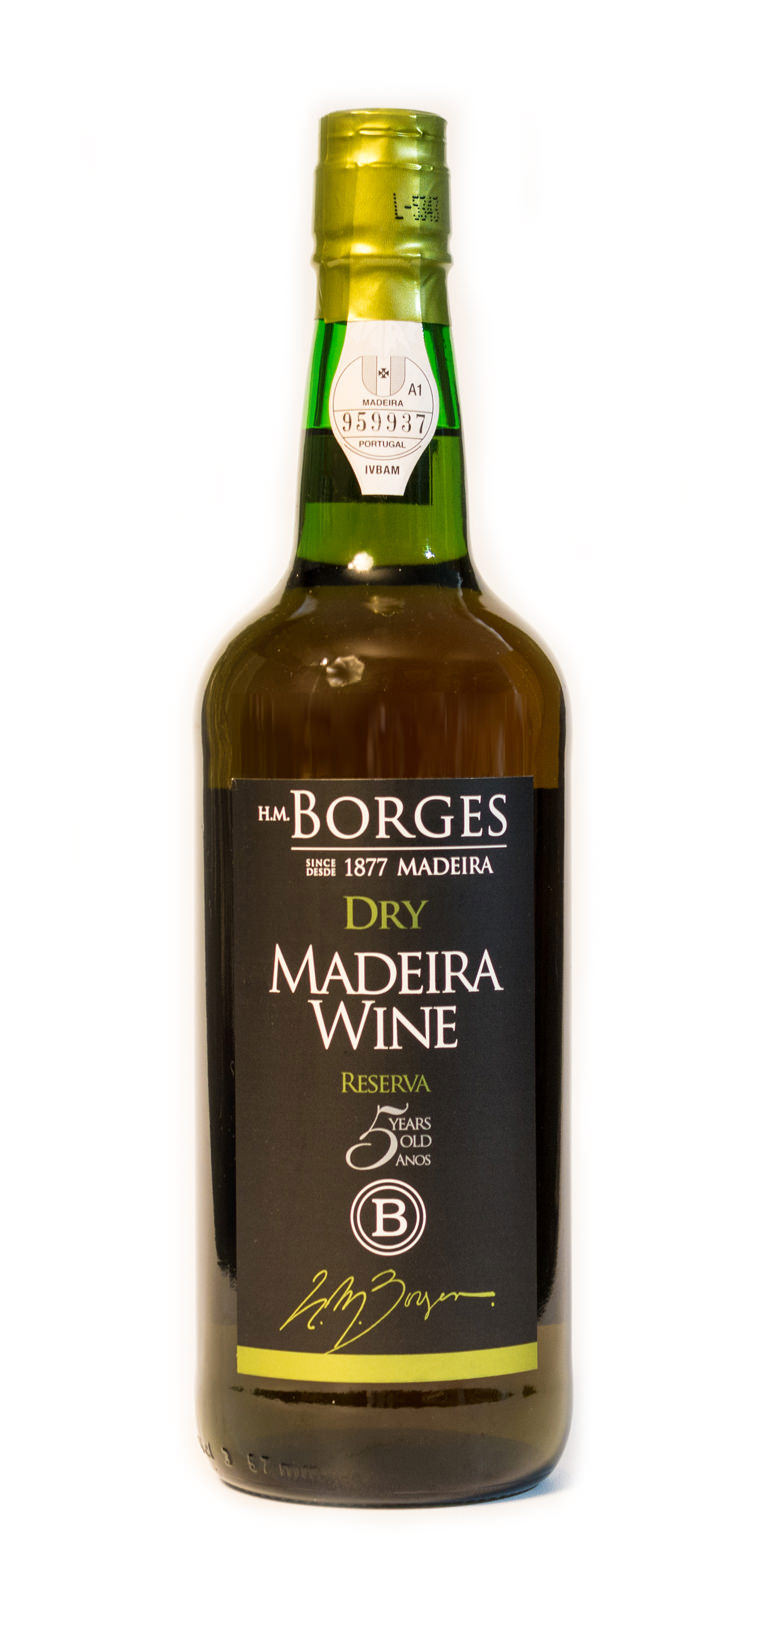 H.M. Borges Dry 5 Years Old